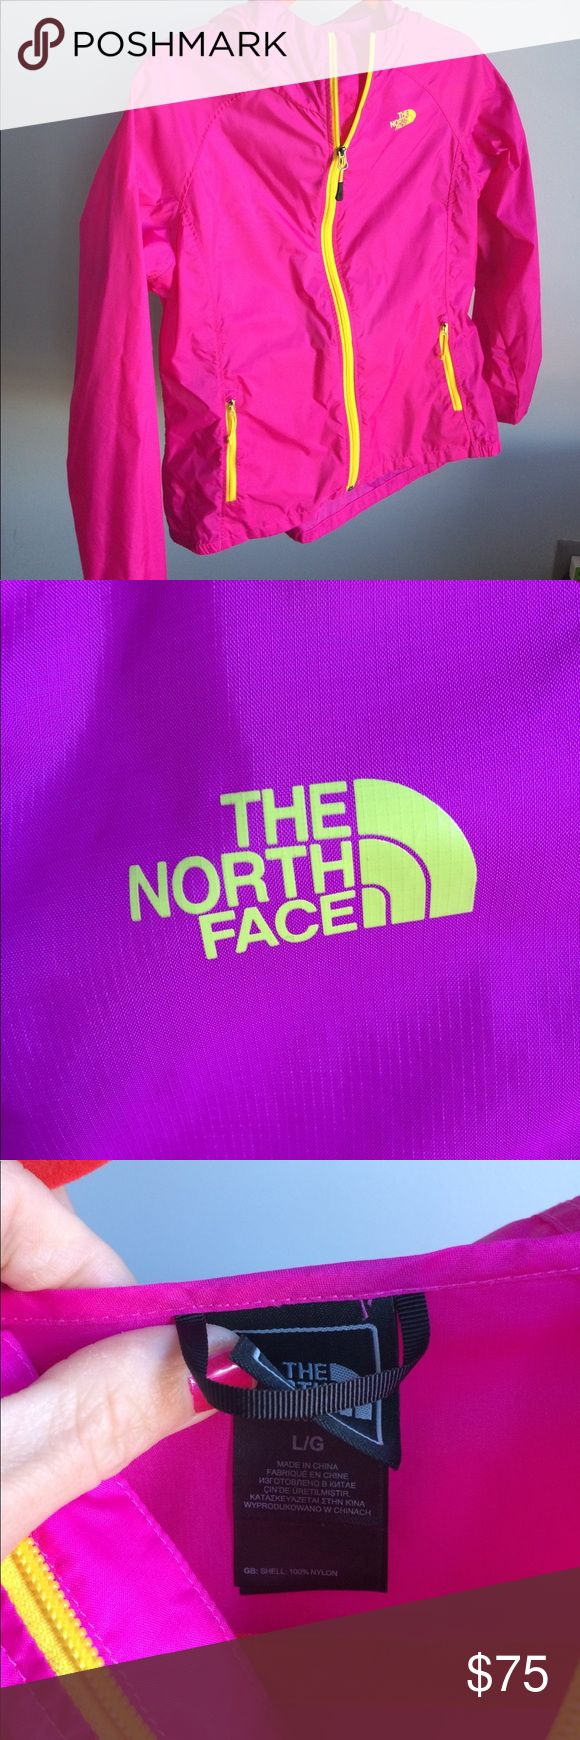 The North Face bright pink packable rain jacket The North Face ladies bright pink with yellow zippers and logo, packable rain jacket! Size Large The North Face Jackets & Coats